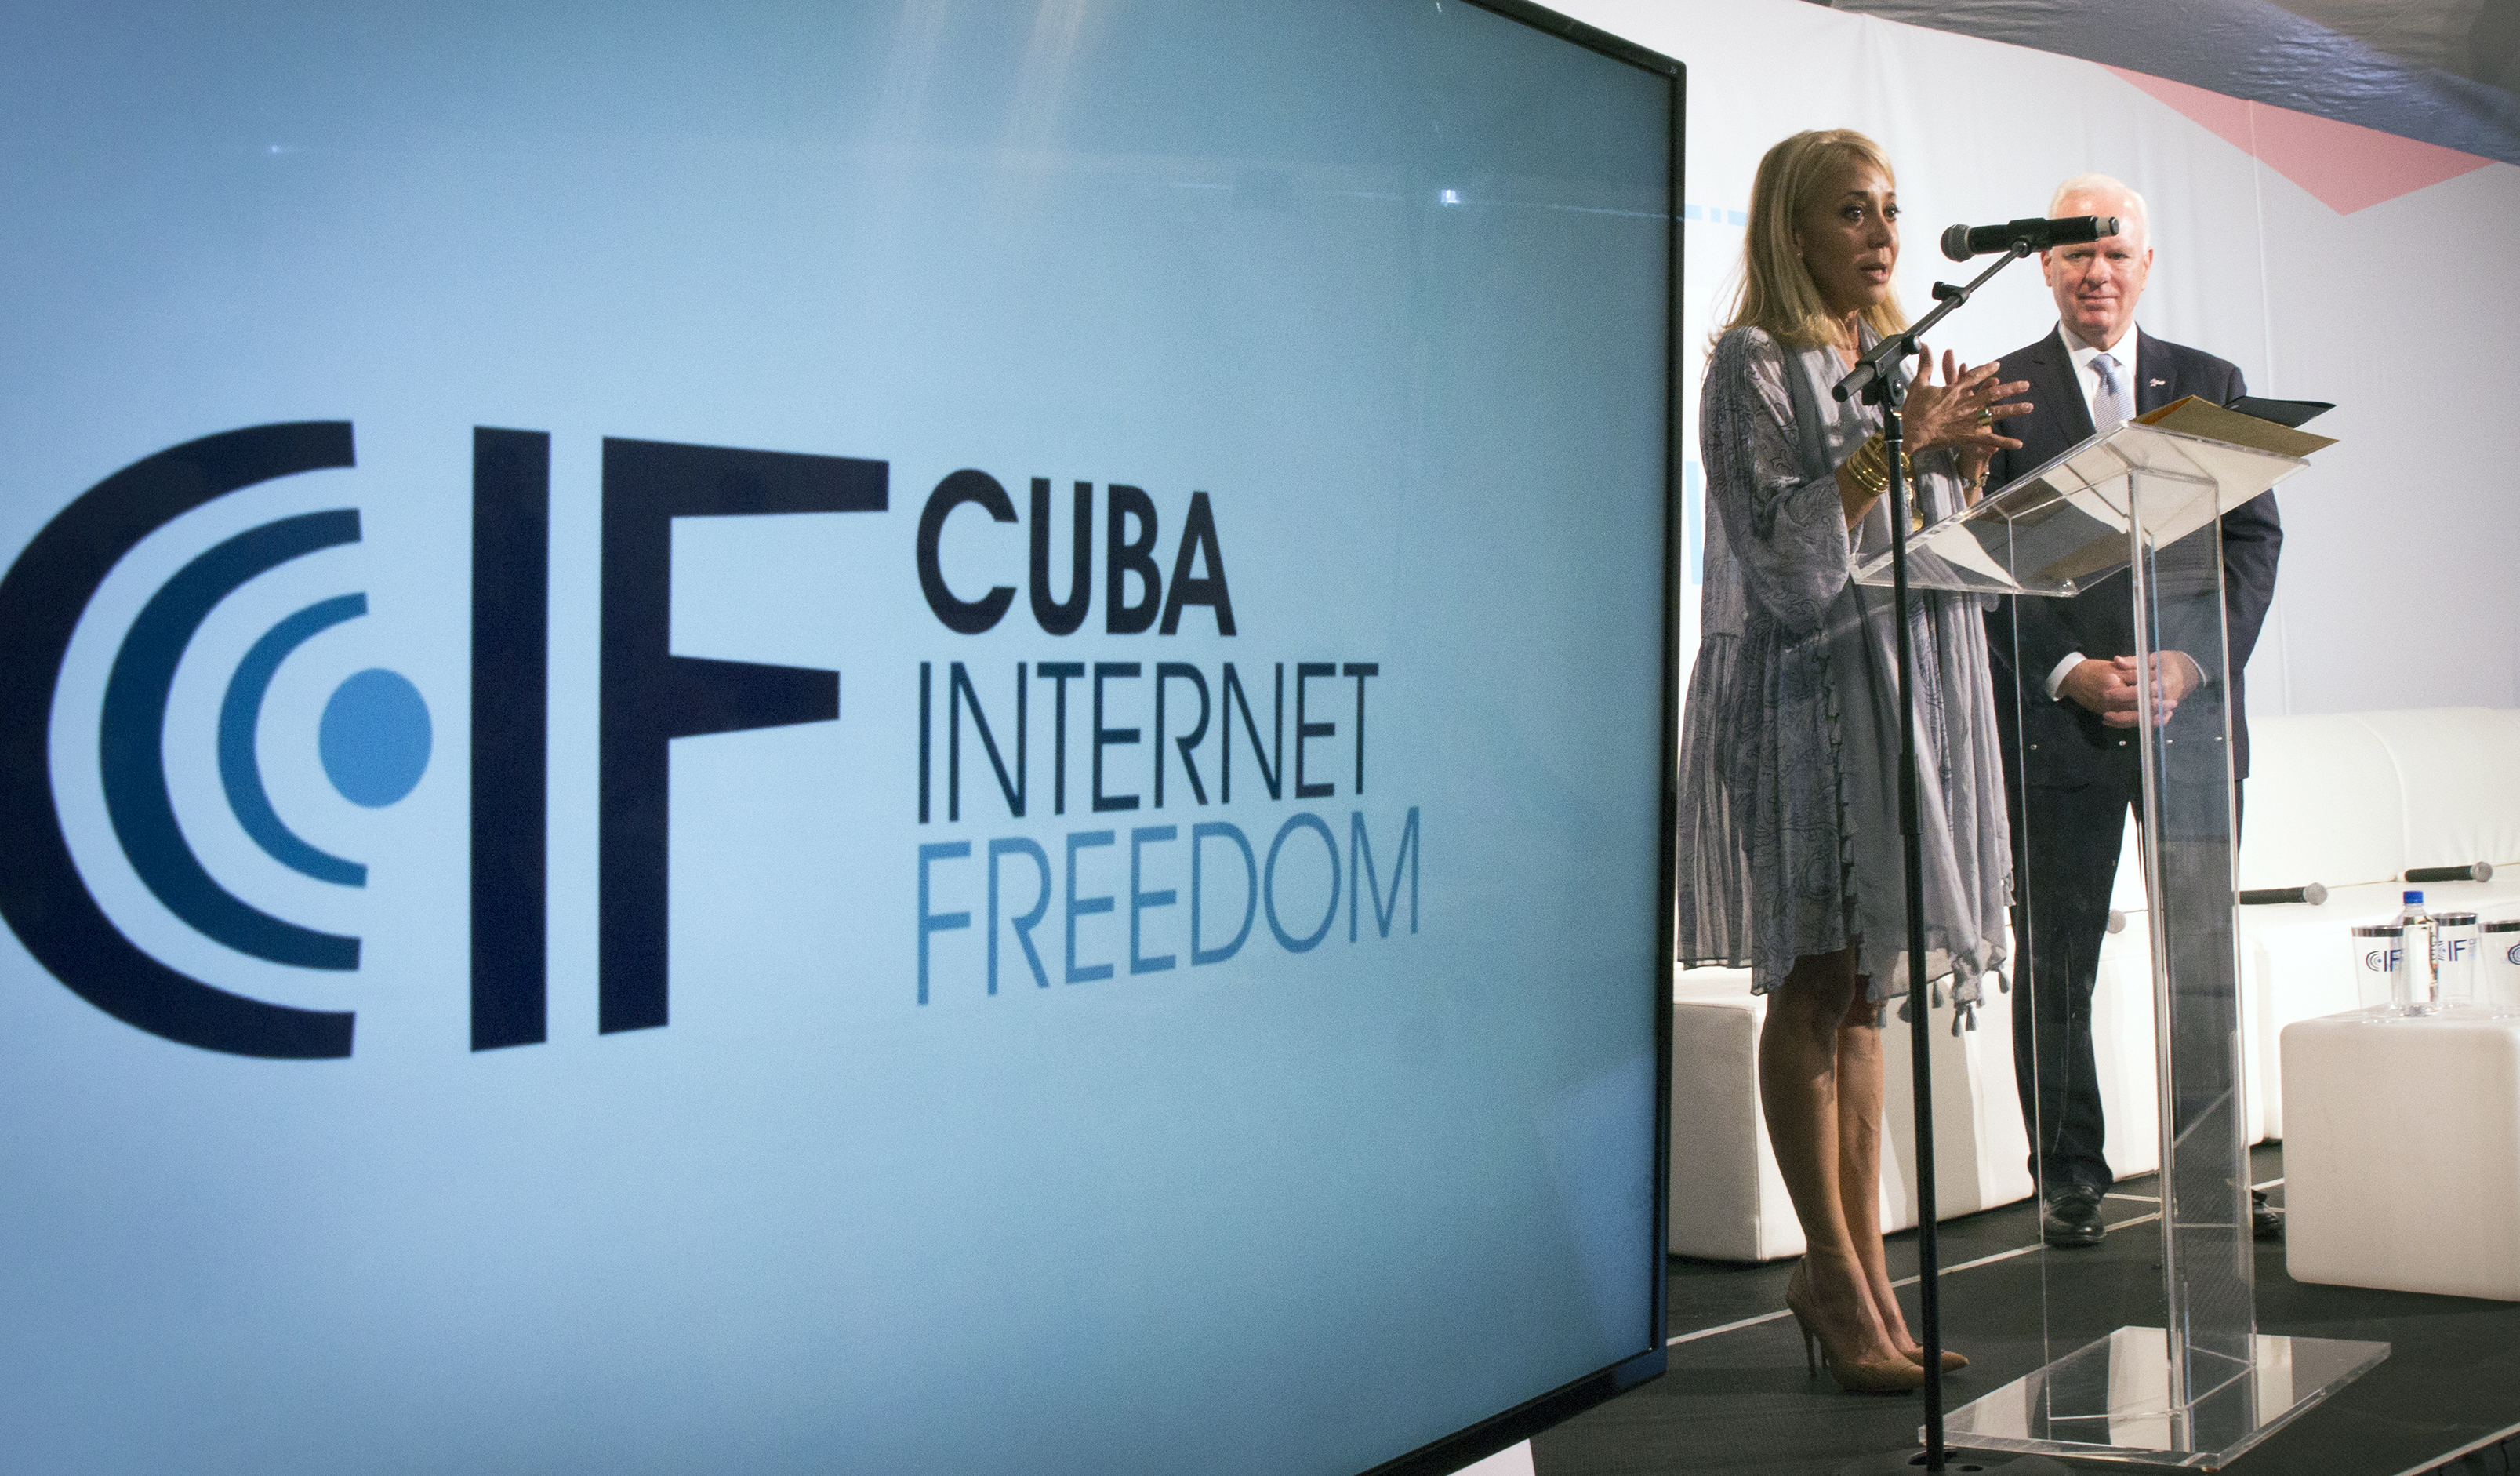 Speakers at the BBG Cuba Internet Freedom Conference